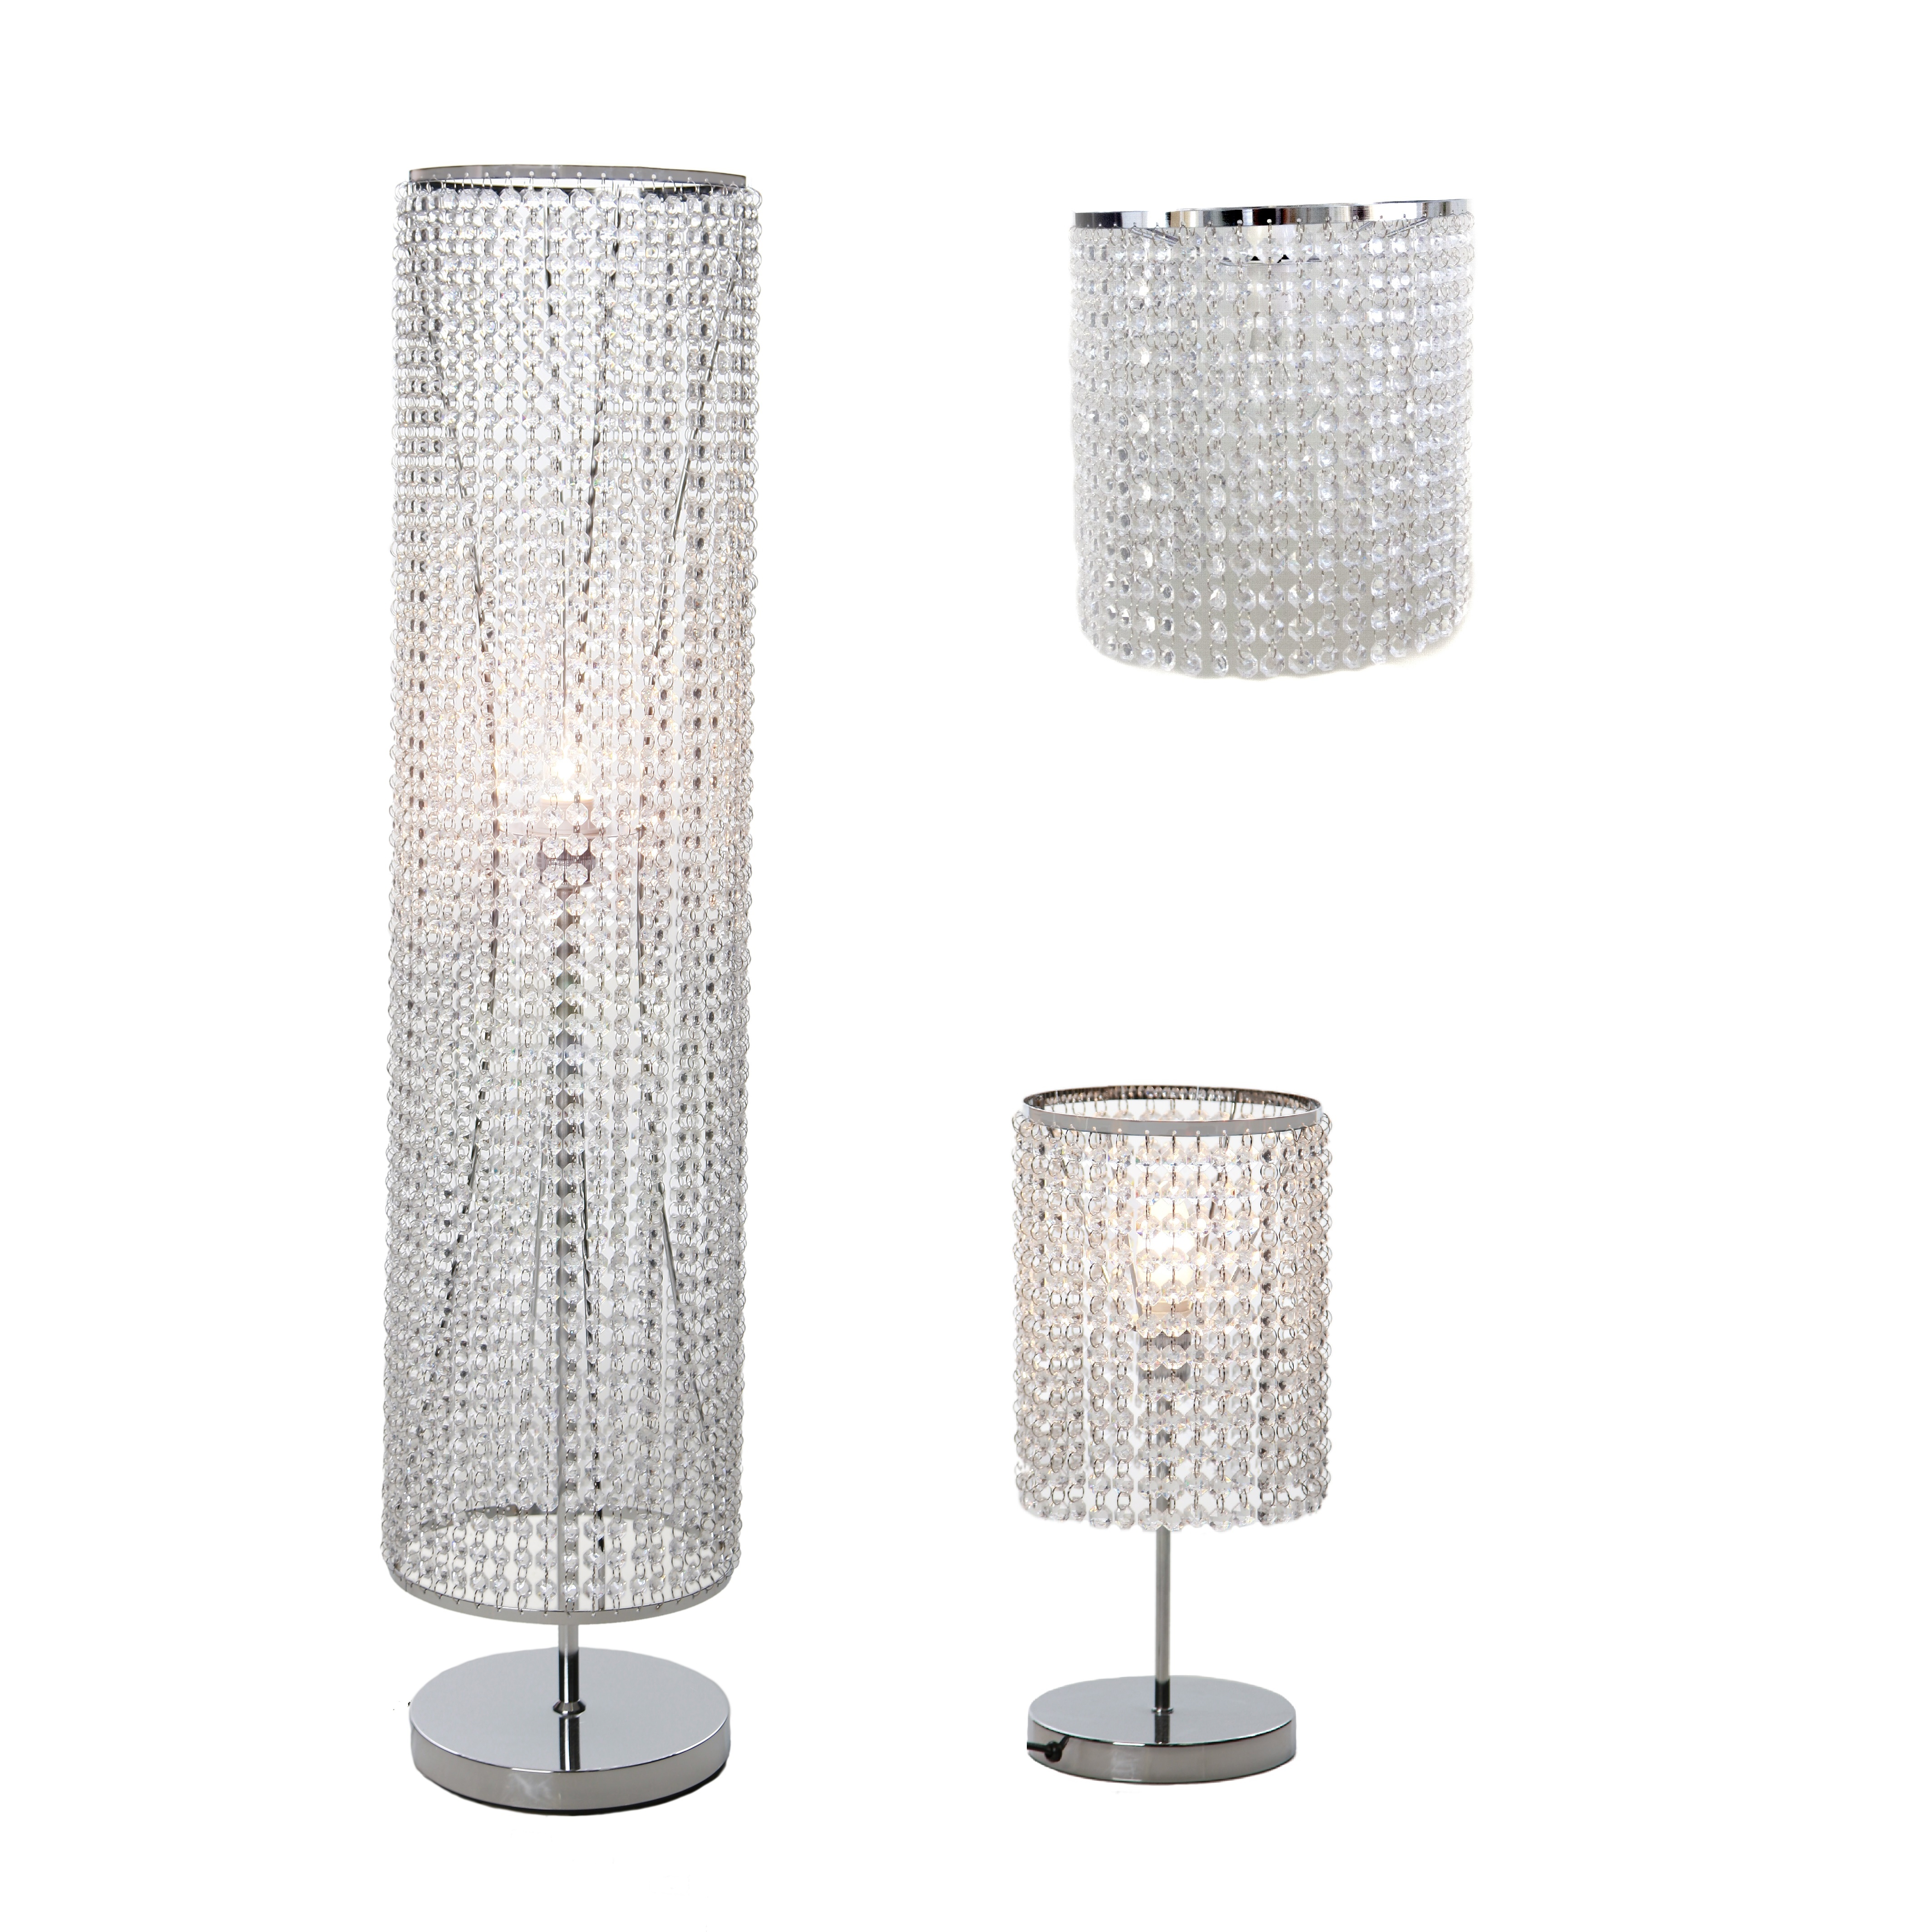 Table Lamp Floor Light Or Ceiling Shade Chrome Crystal